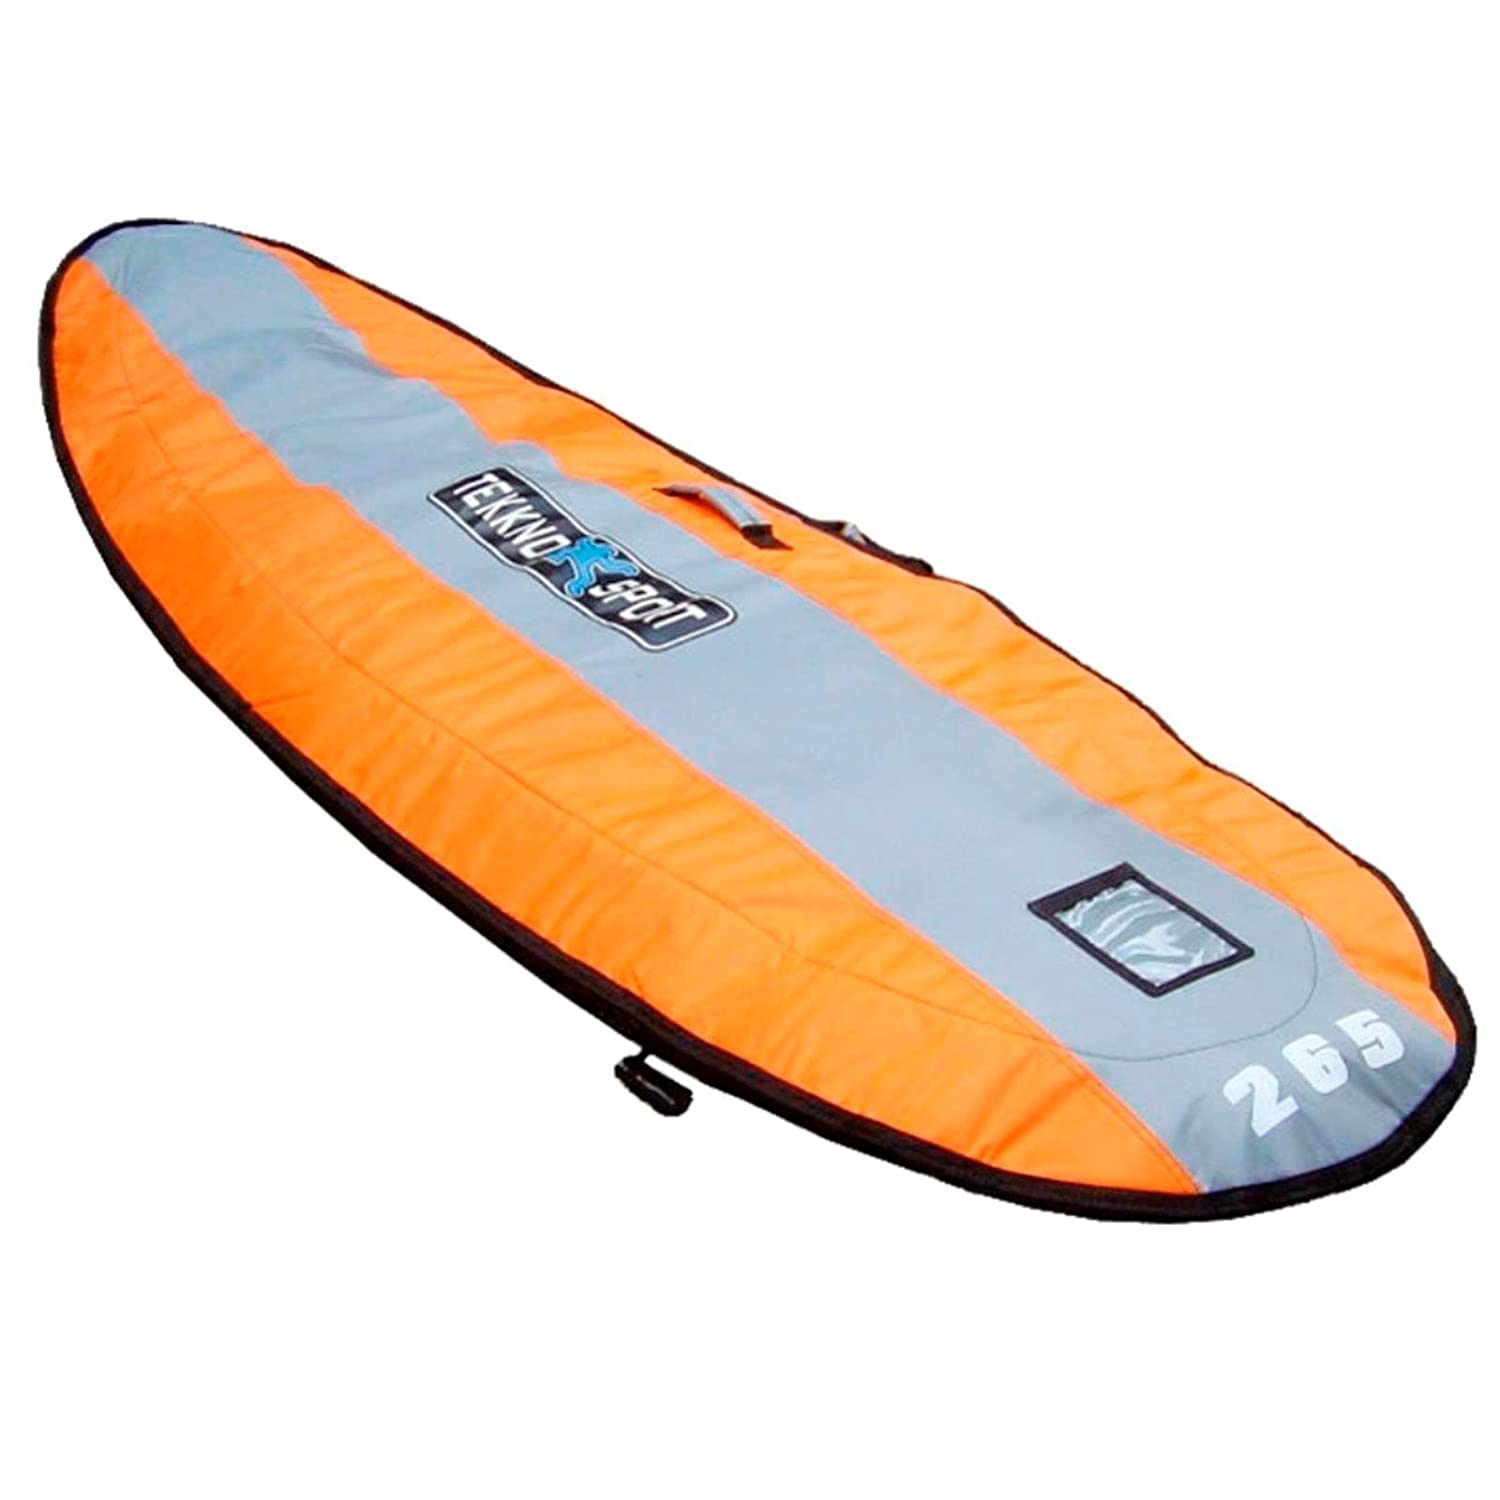 Tekknosport Boardbag 250 (255x95) Orange